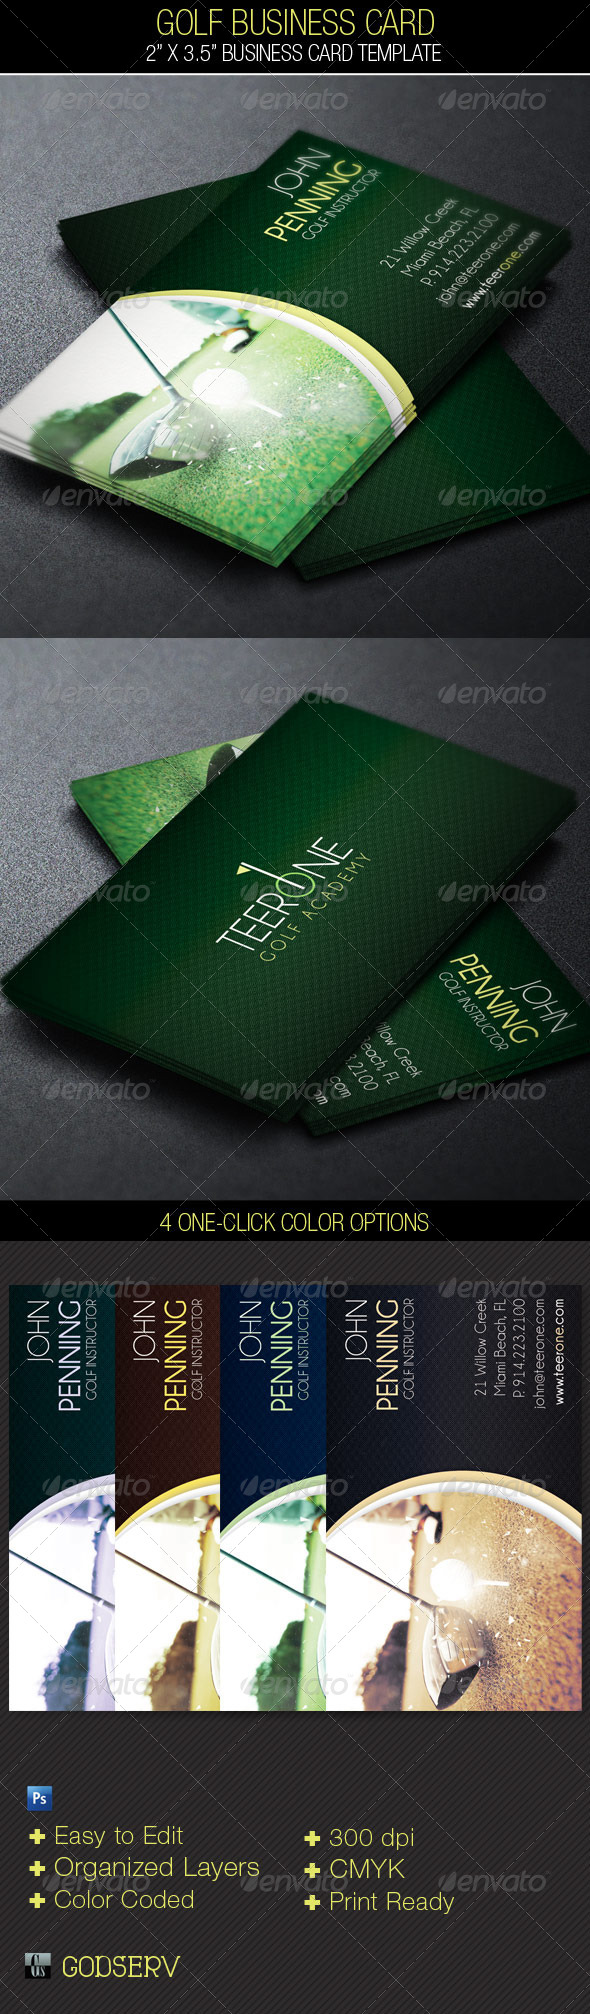 Golf business card template by godserv graphicriver golf business card template industry specific business cards colourmoves